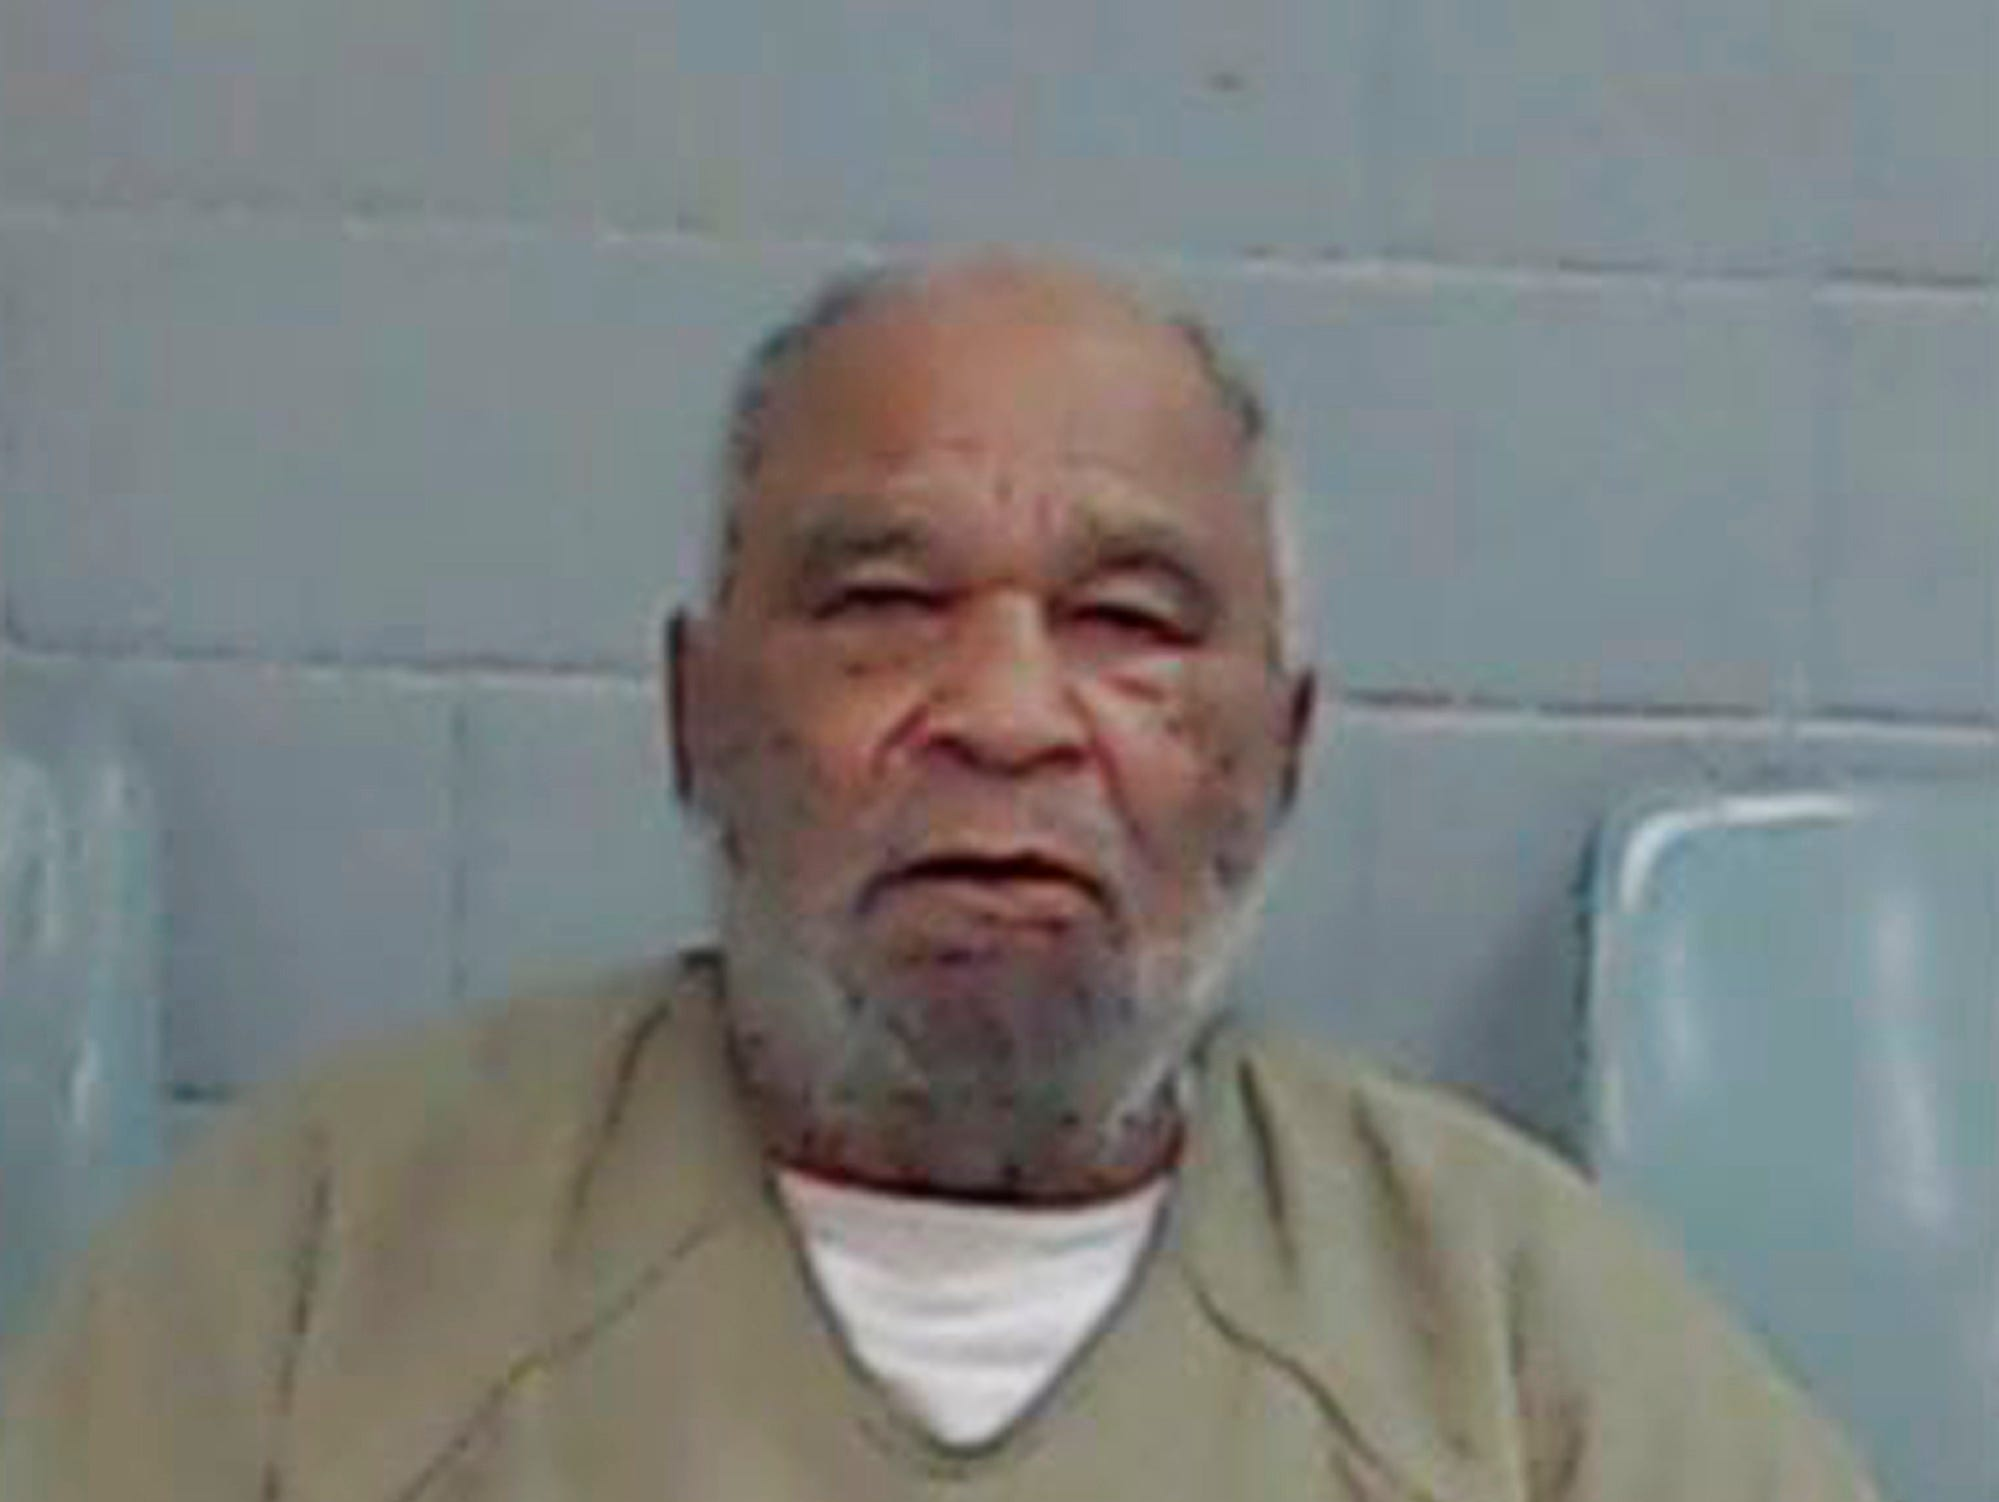 This undated photo provided by the Ector County Texas Sheriff's Office shows Samuel Little. A Texas prosecutor says Little, convicted in three California killings but long suspected in dozens of deaths, now claims he was involved in about 90 killings nationwide.